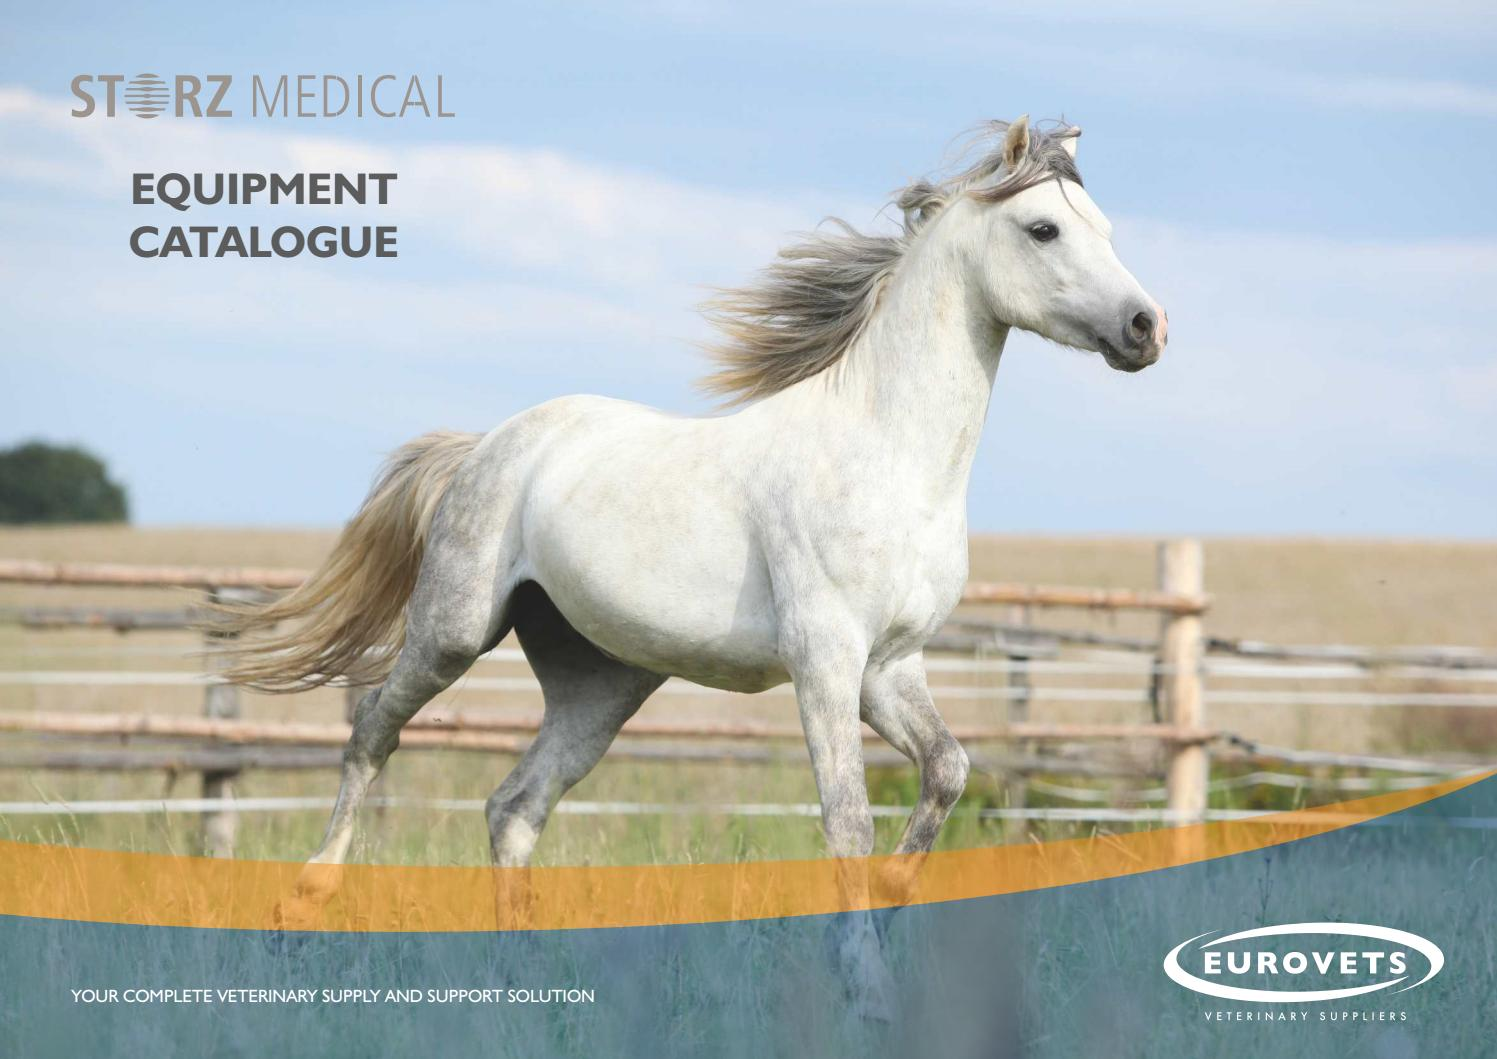 Storz Medical Equipment Catalogue by Eurovets Veterinary